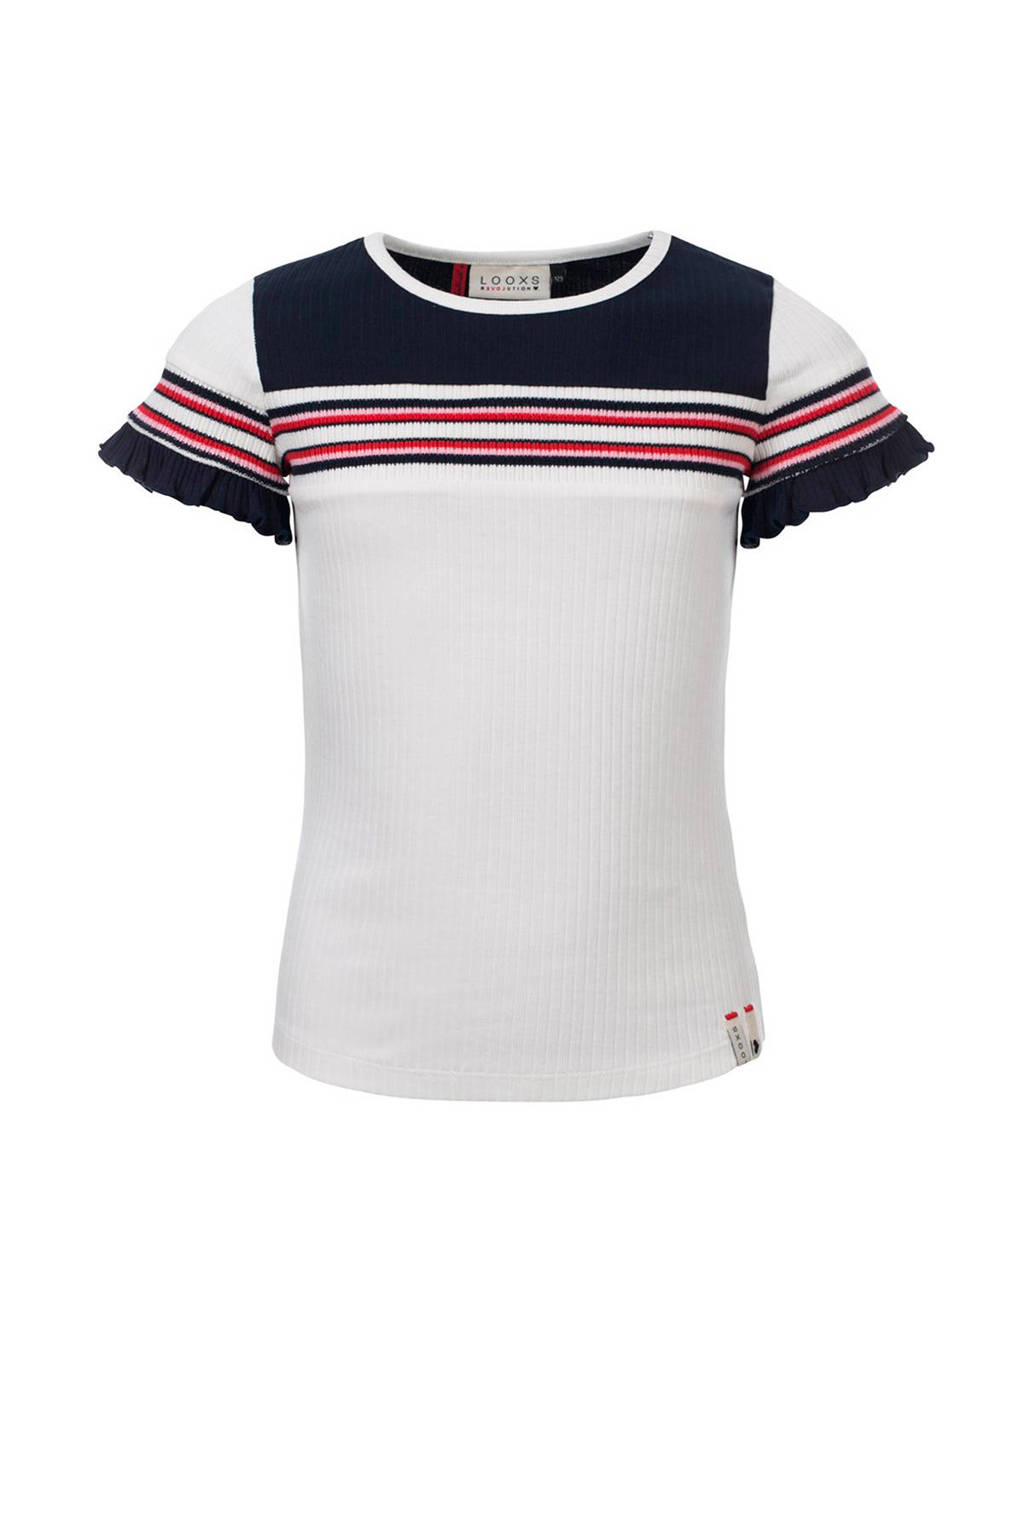 LOOXS T-shirt met ruches wit/donkerblauw/rood, Wit/donkerblauw/rood